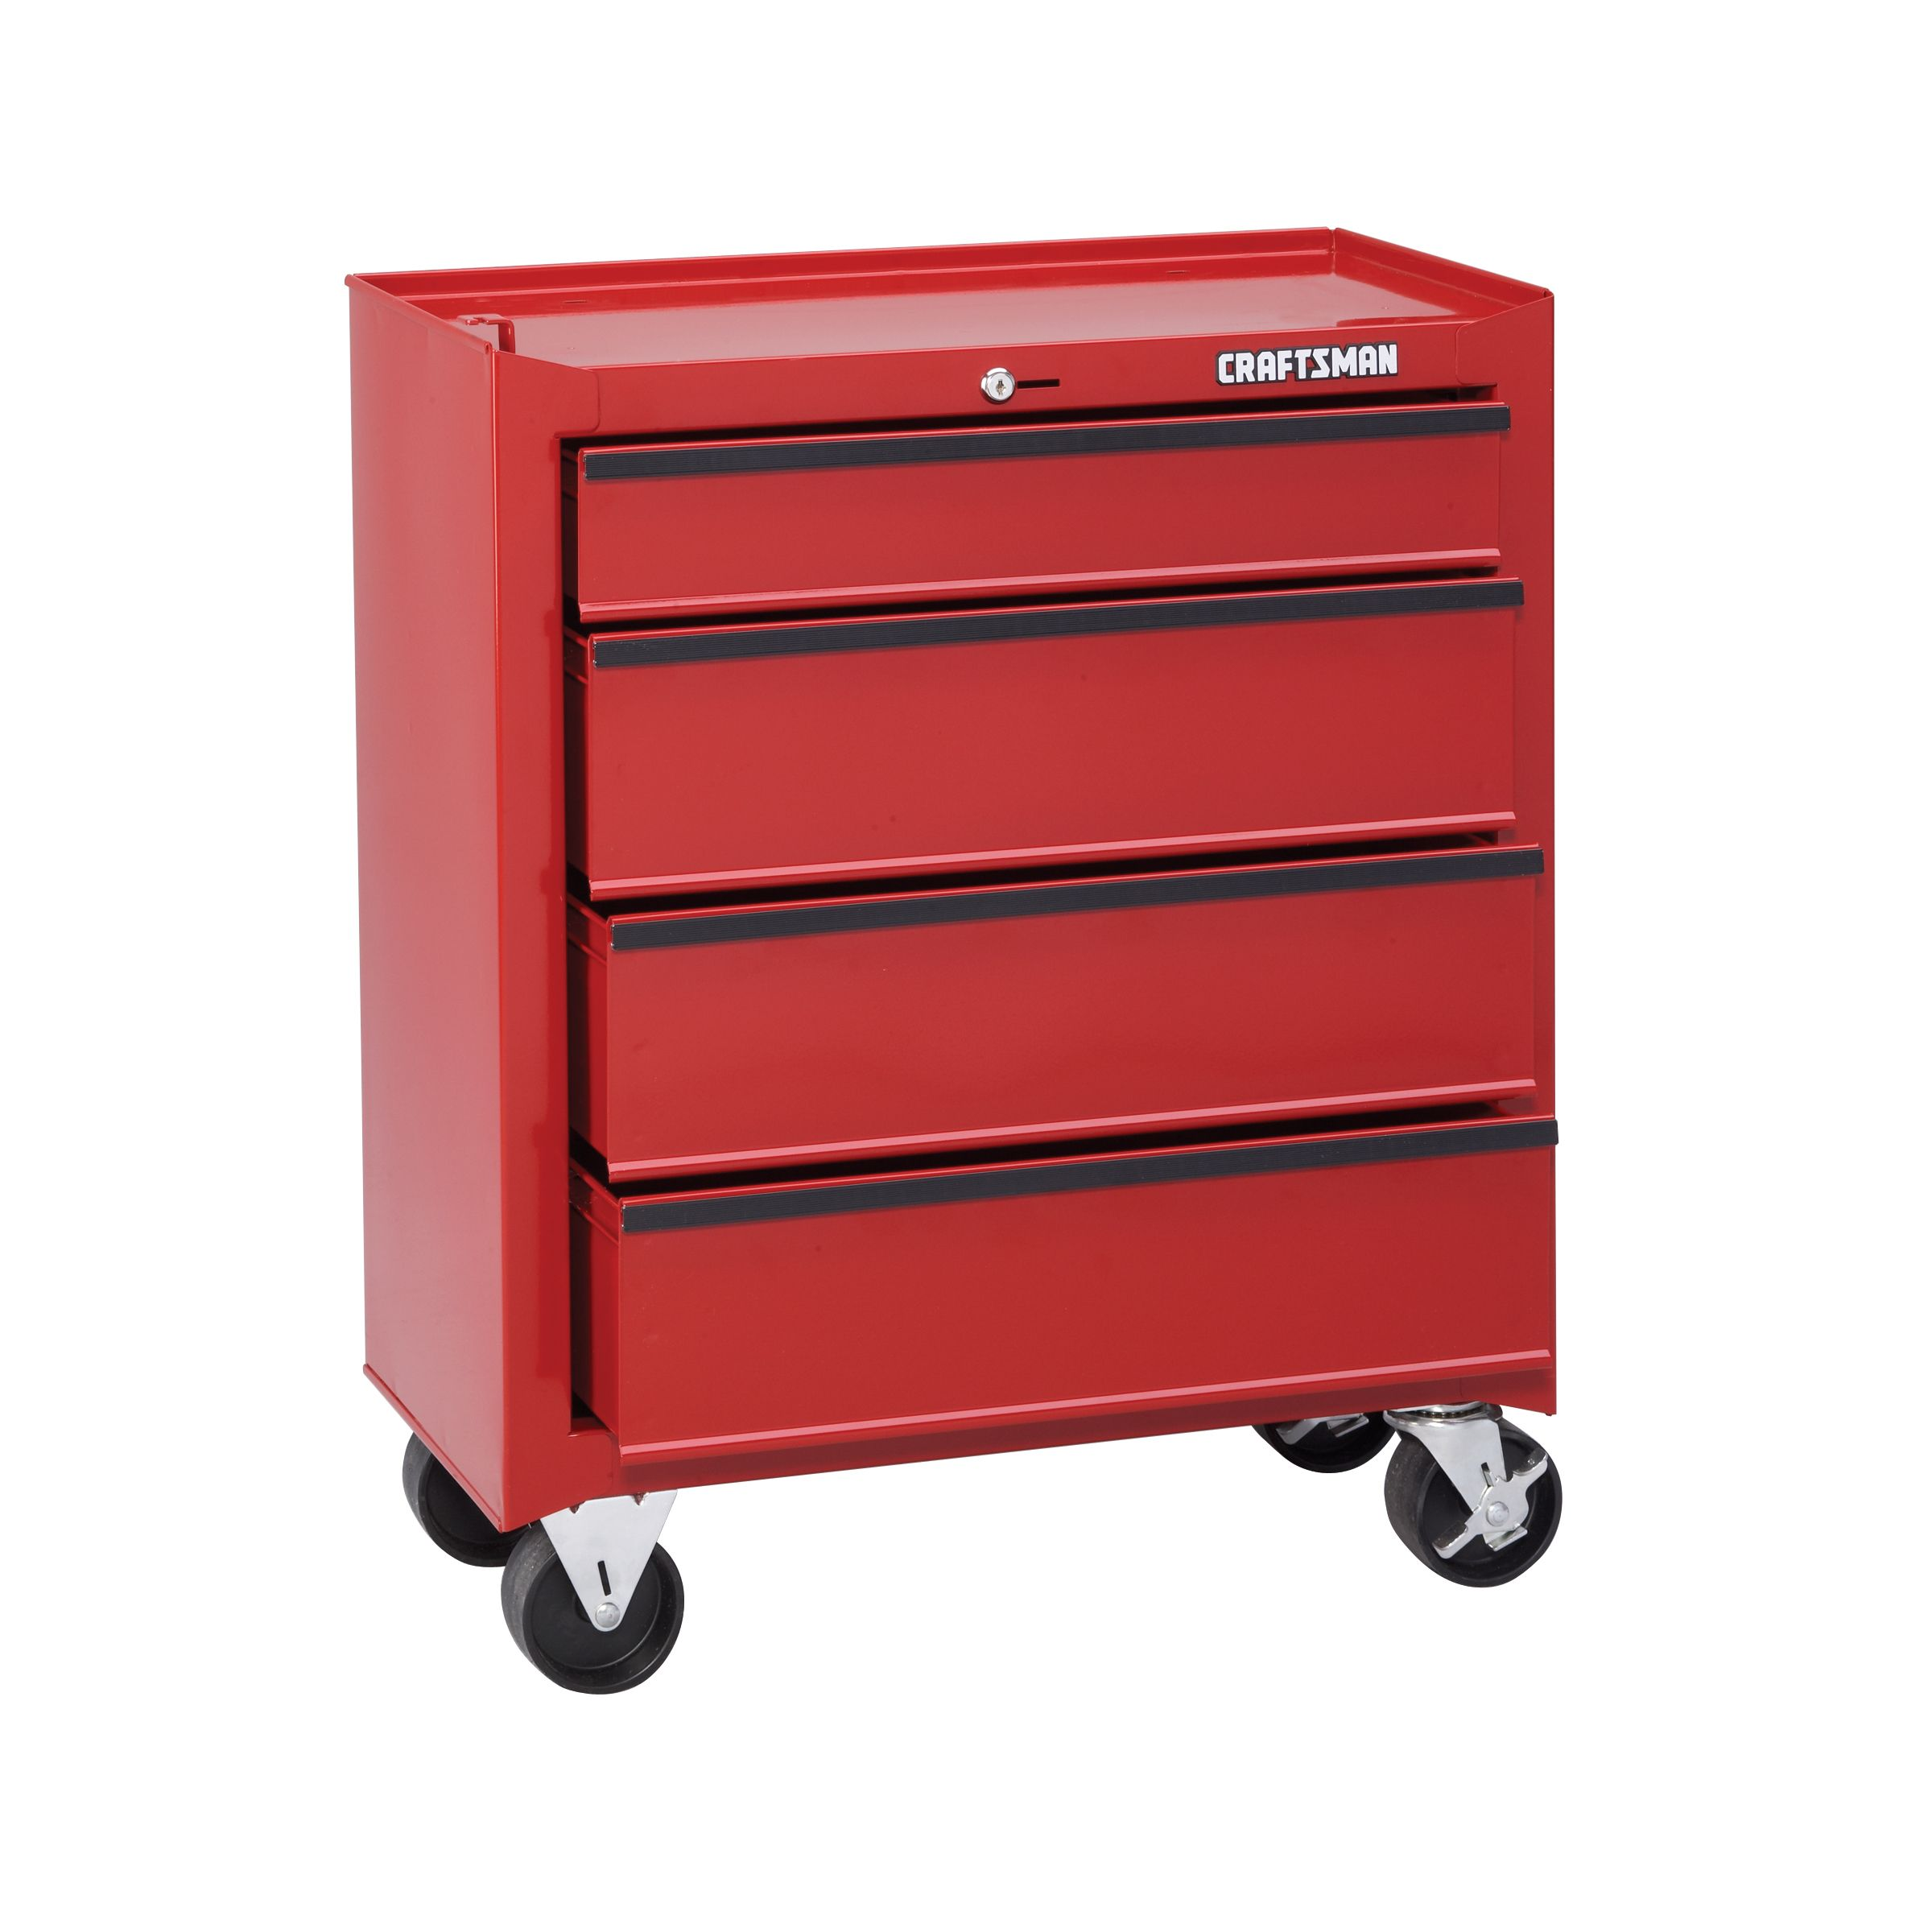 "Craftsman 26-1/2"" 4-Drawer Roll-Away Homeowner Tool Chest - Red"